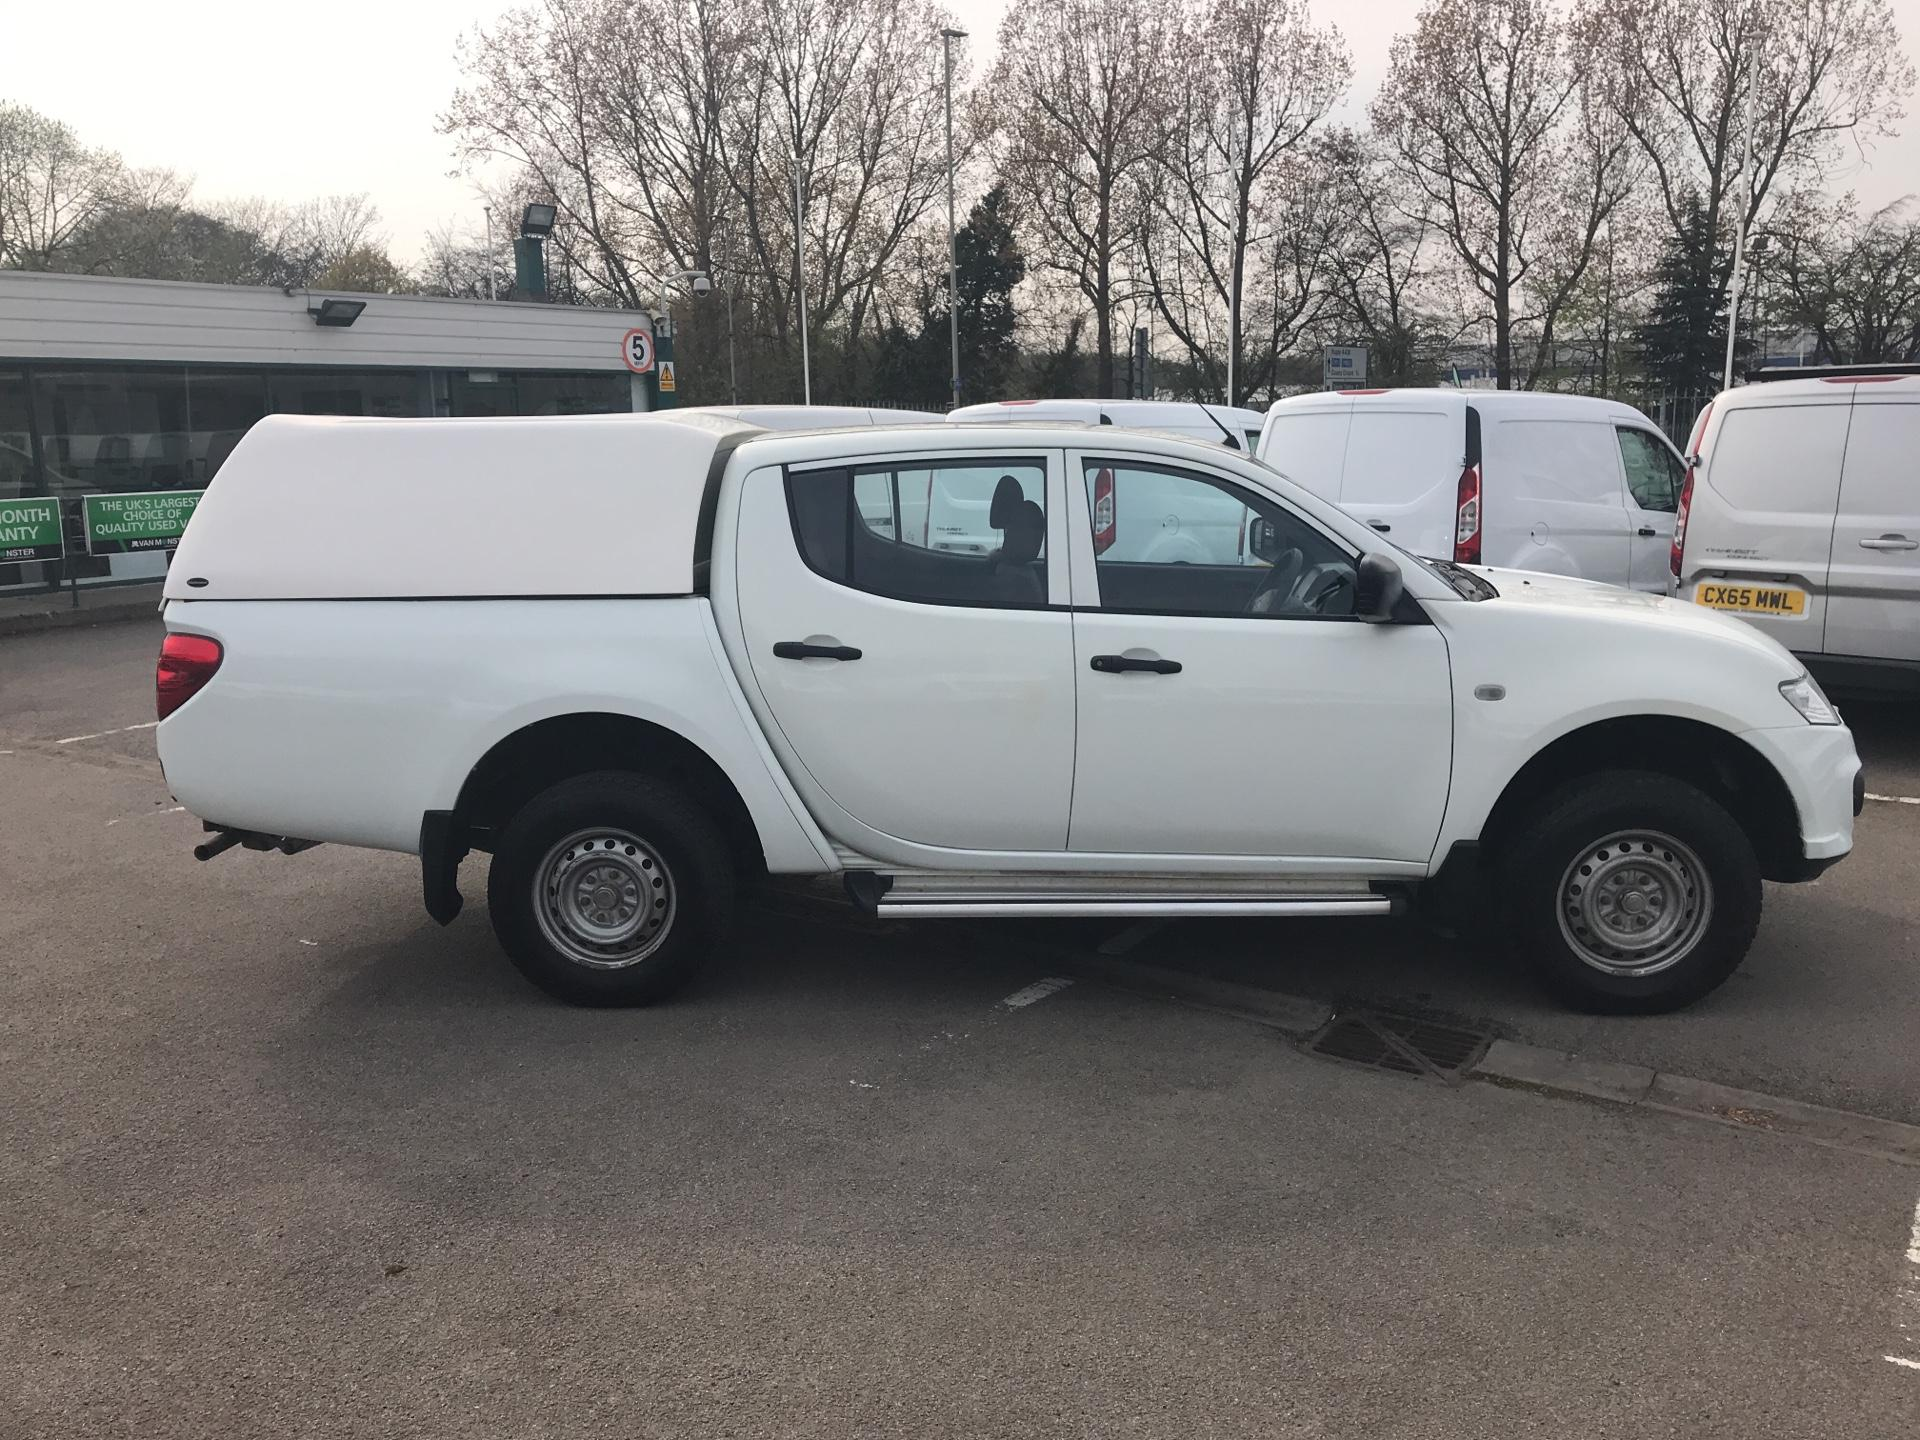 2015 Mitsubishi L200 Double Cab Di-D 4Life 4Wd 134Bhp *VALUE RANGE VEHICLE  CONDITION REFLECTED IN PRICE*